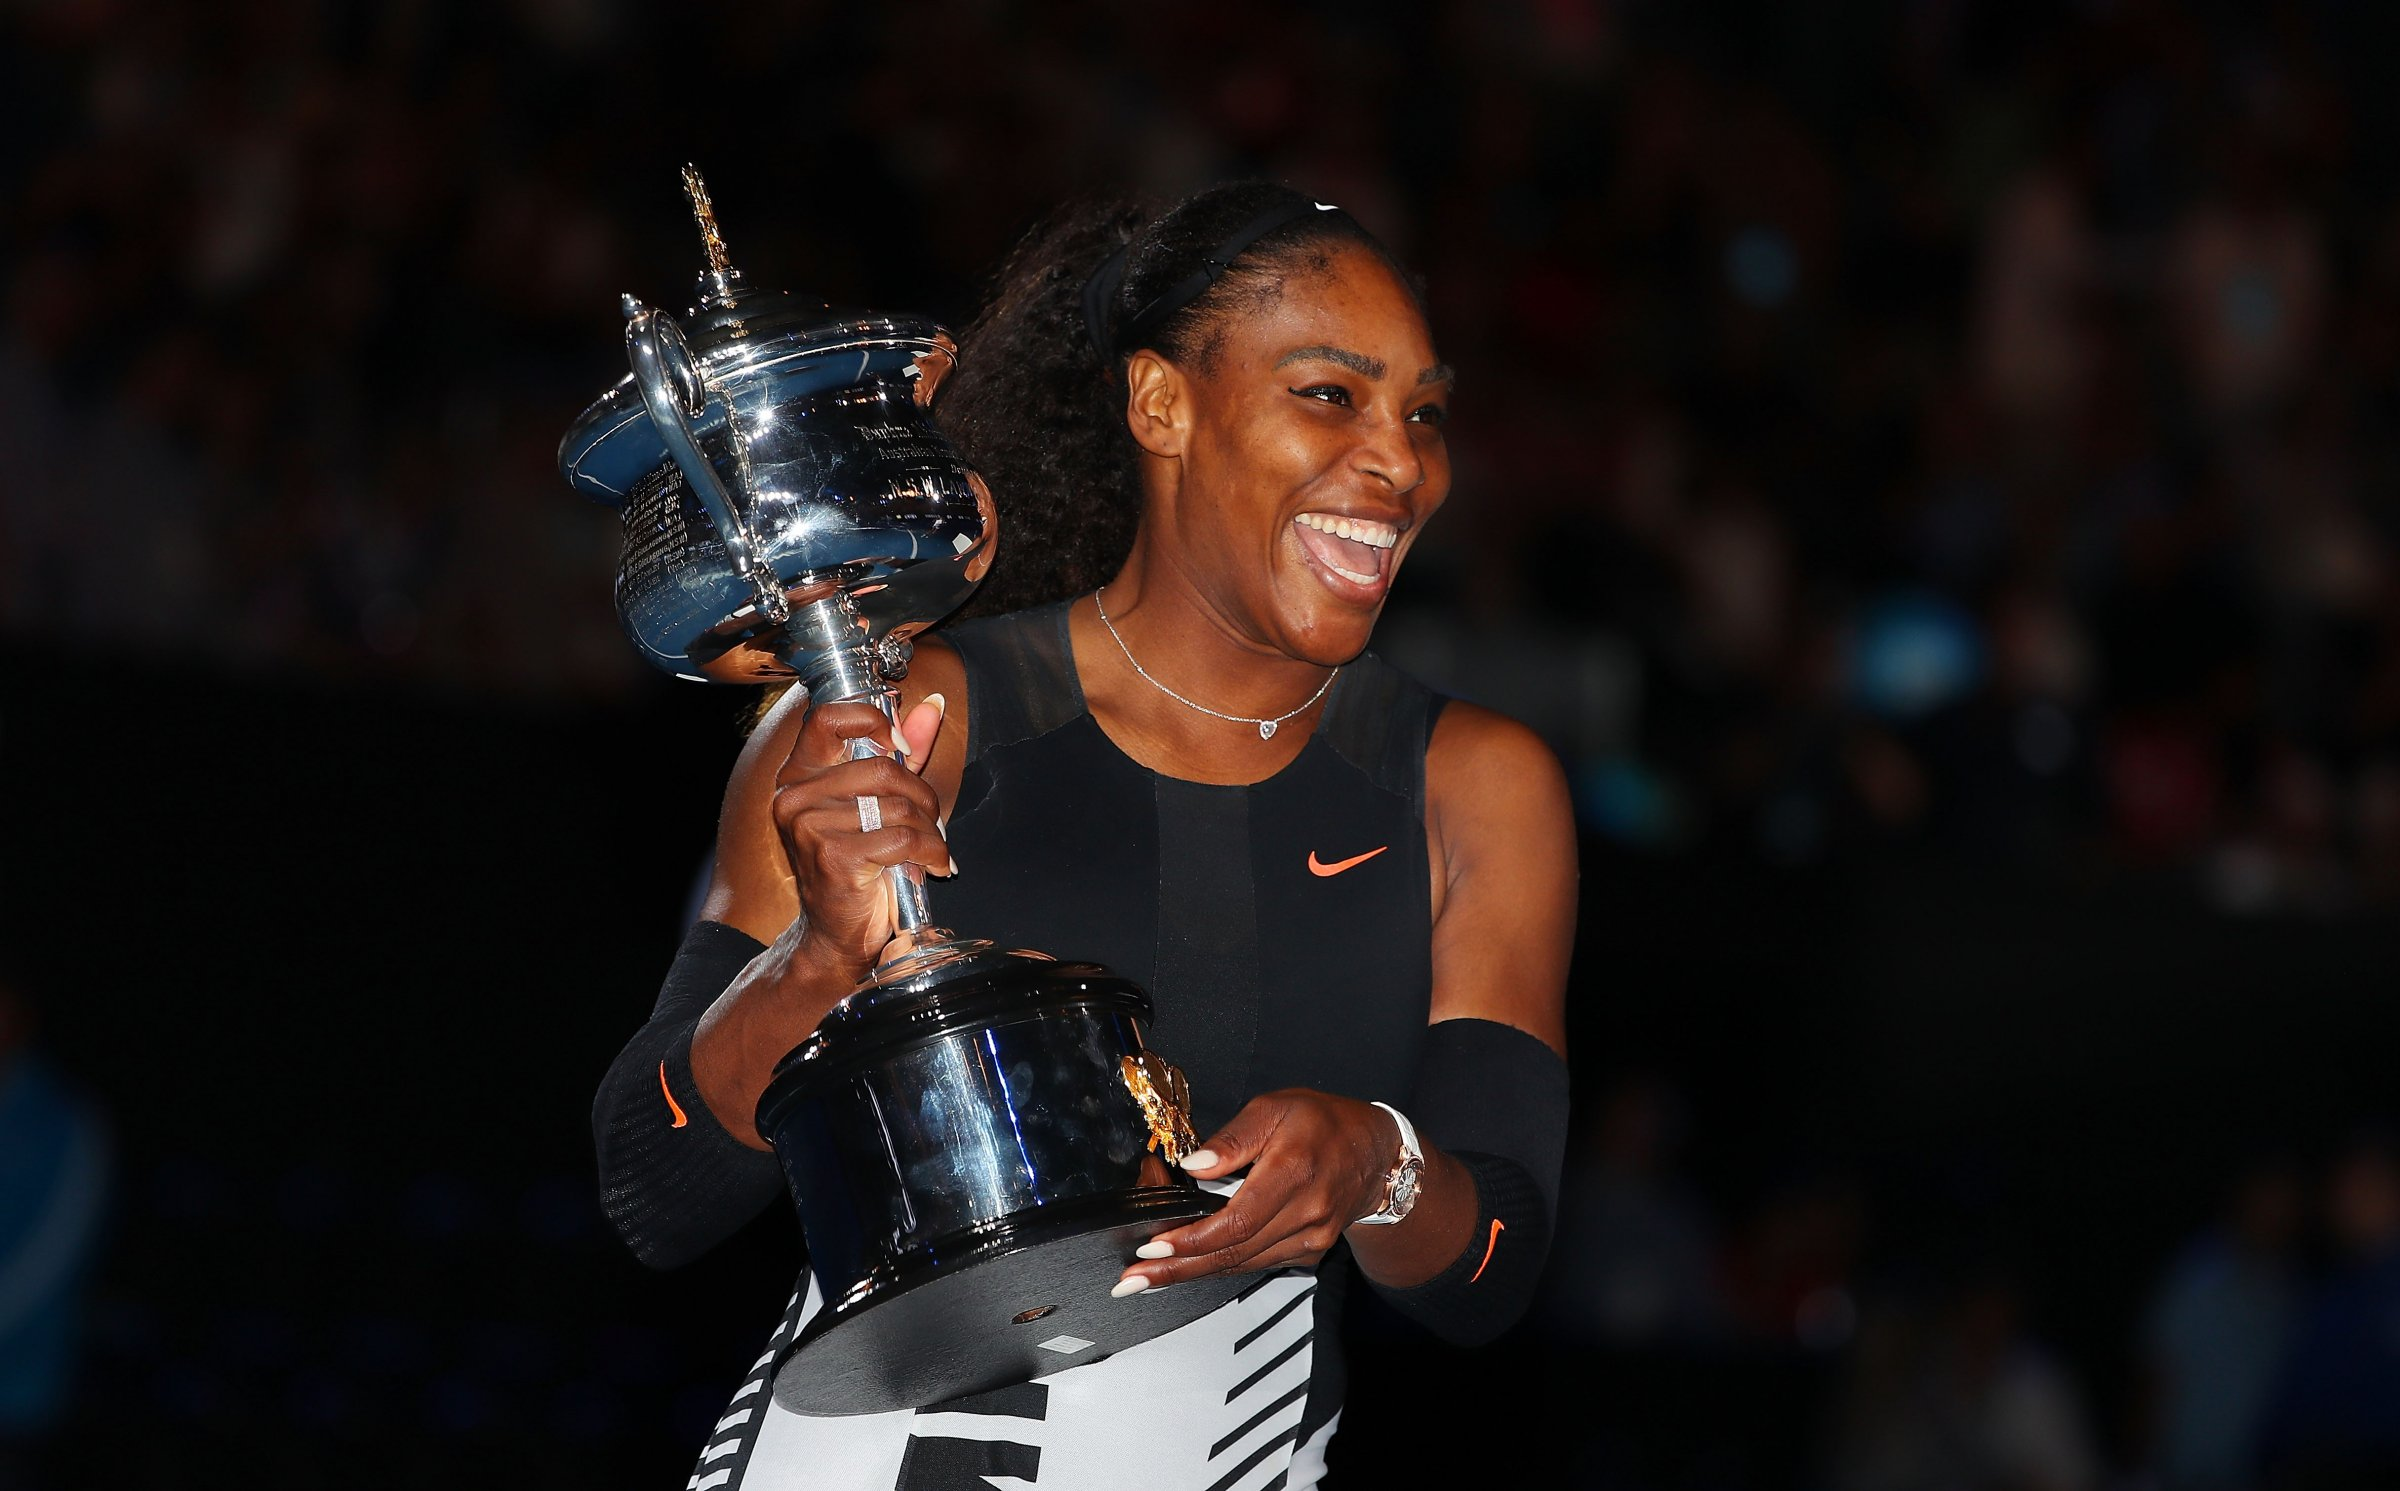 beautiful serena williams smiling with cup free hd mobile desktop background images